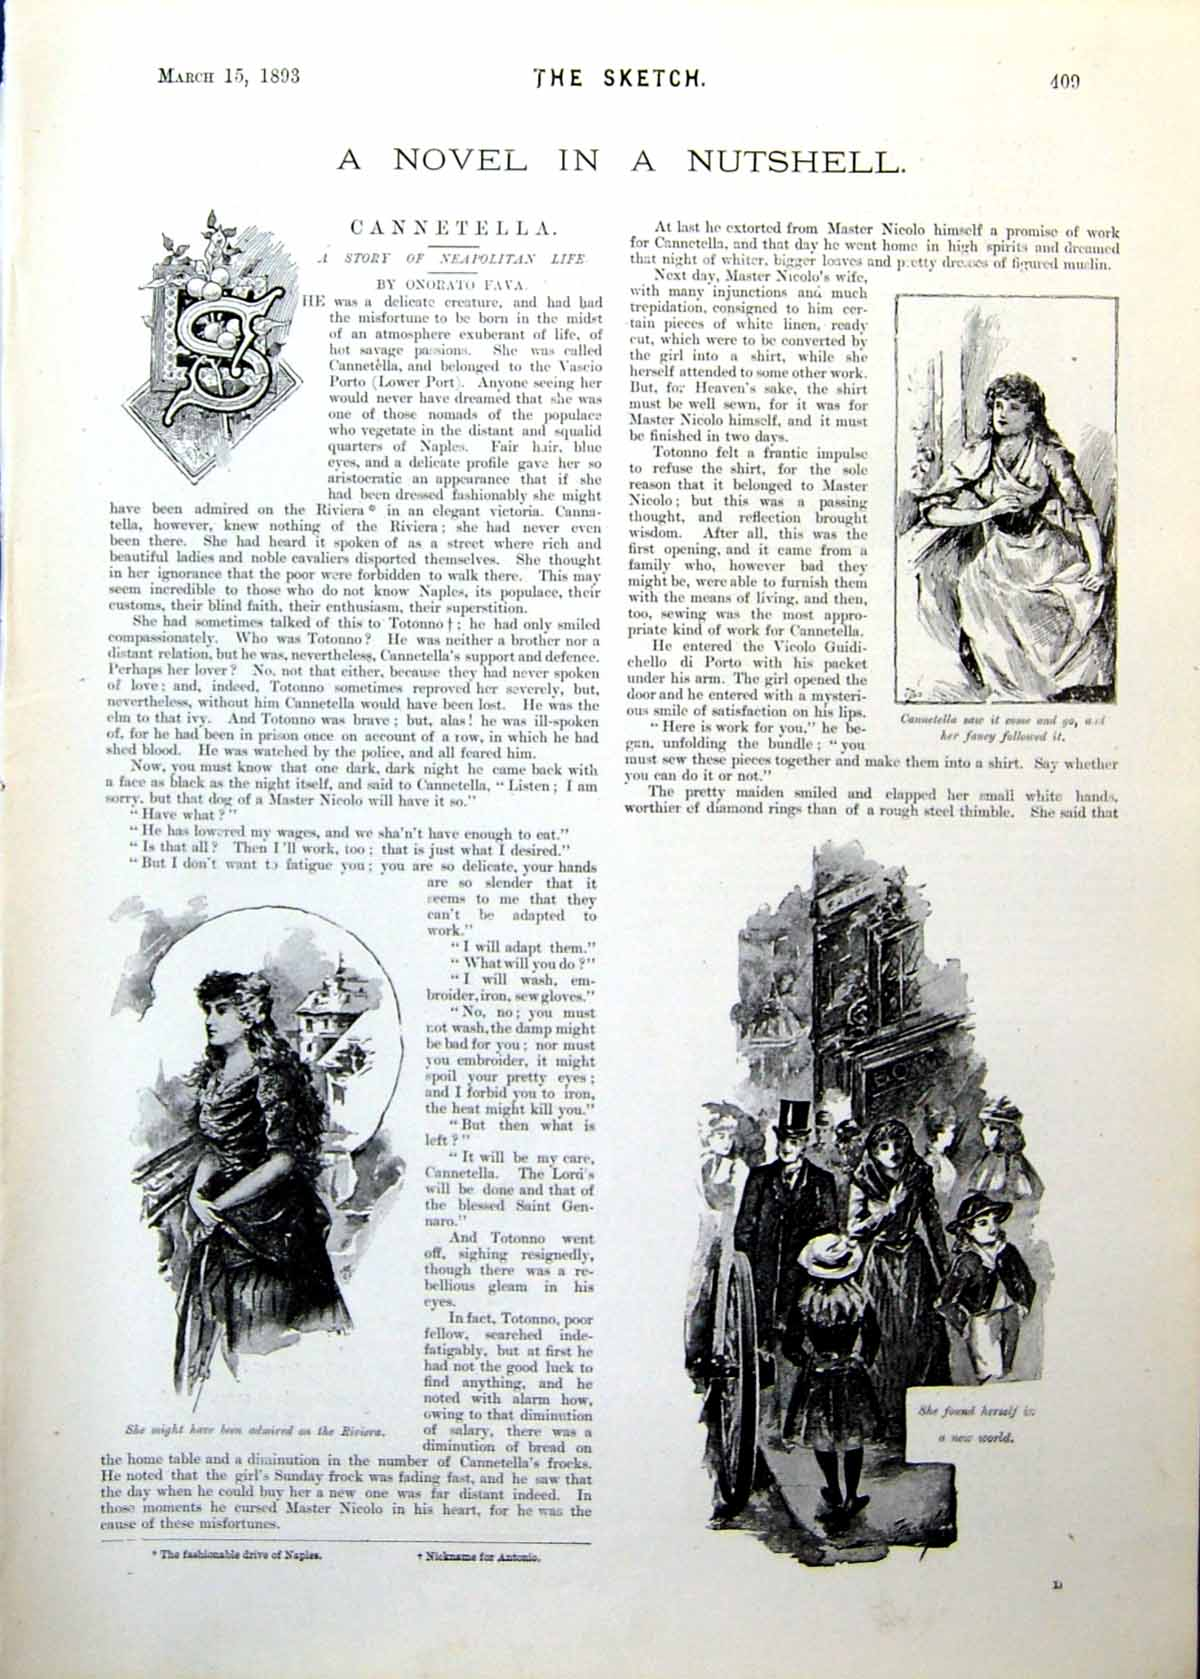 Antique-Old-Print-Cannetella-Novel-Scenes-Pretty-Maiden-Kissed-Upset-1893-19th